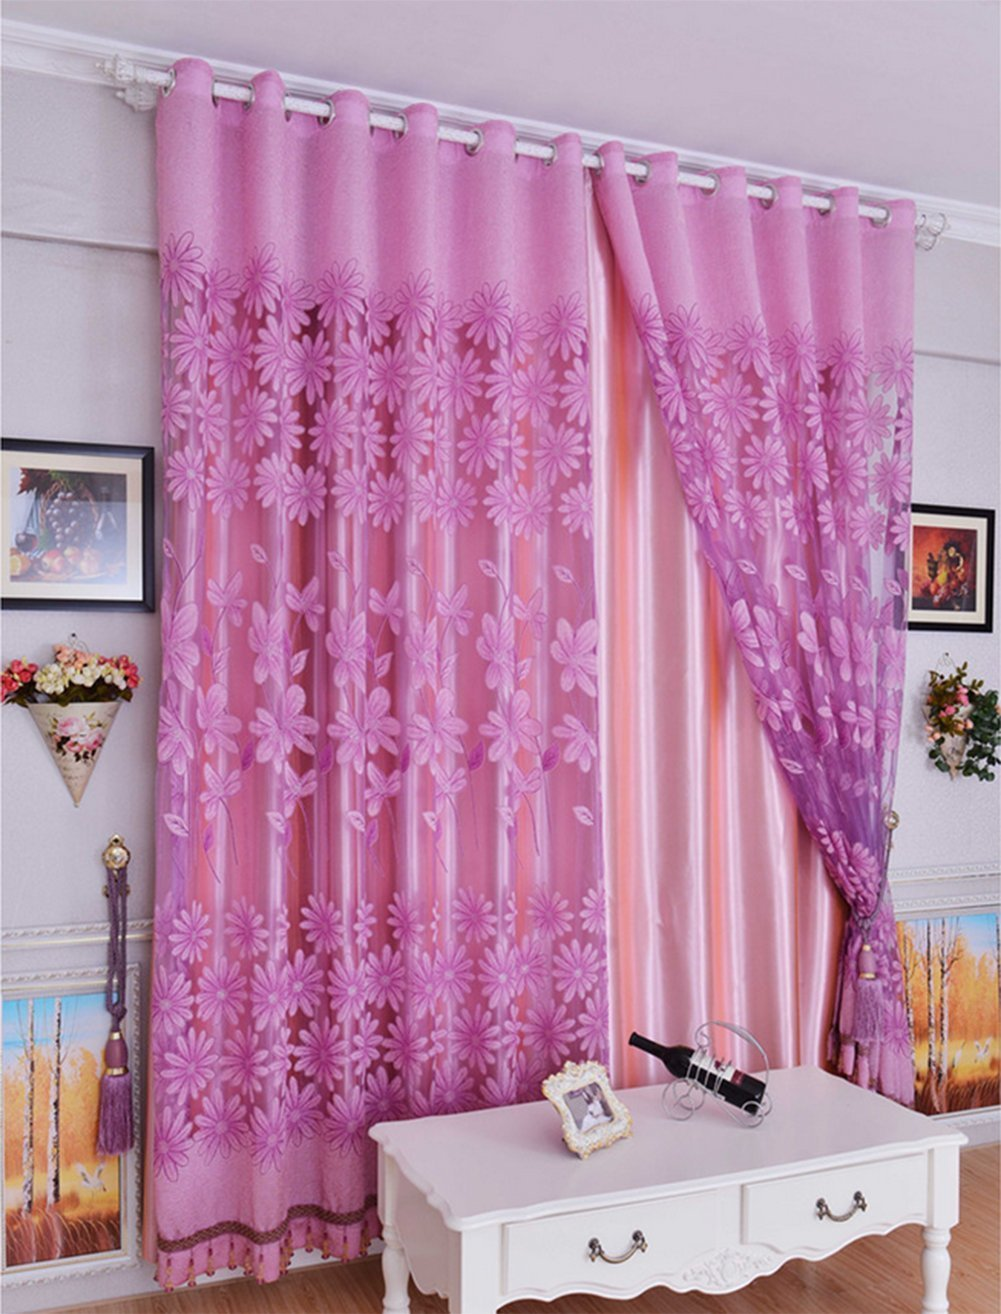 voile sheer willow floral tulle at curtain line quotations guides room on valances light deals com drapes cheap print pink get scarf panel find purple shopping freedi alibaba